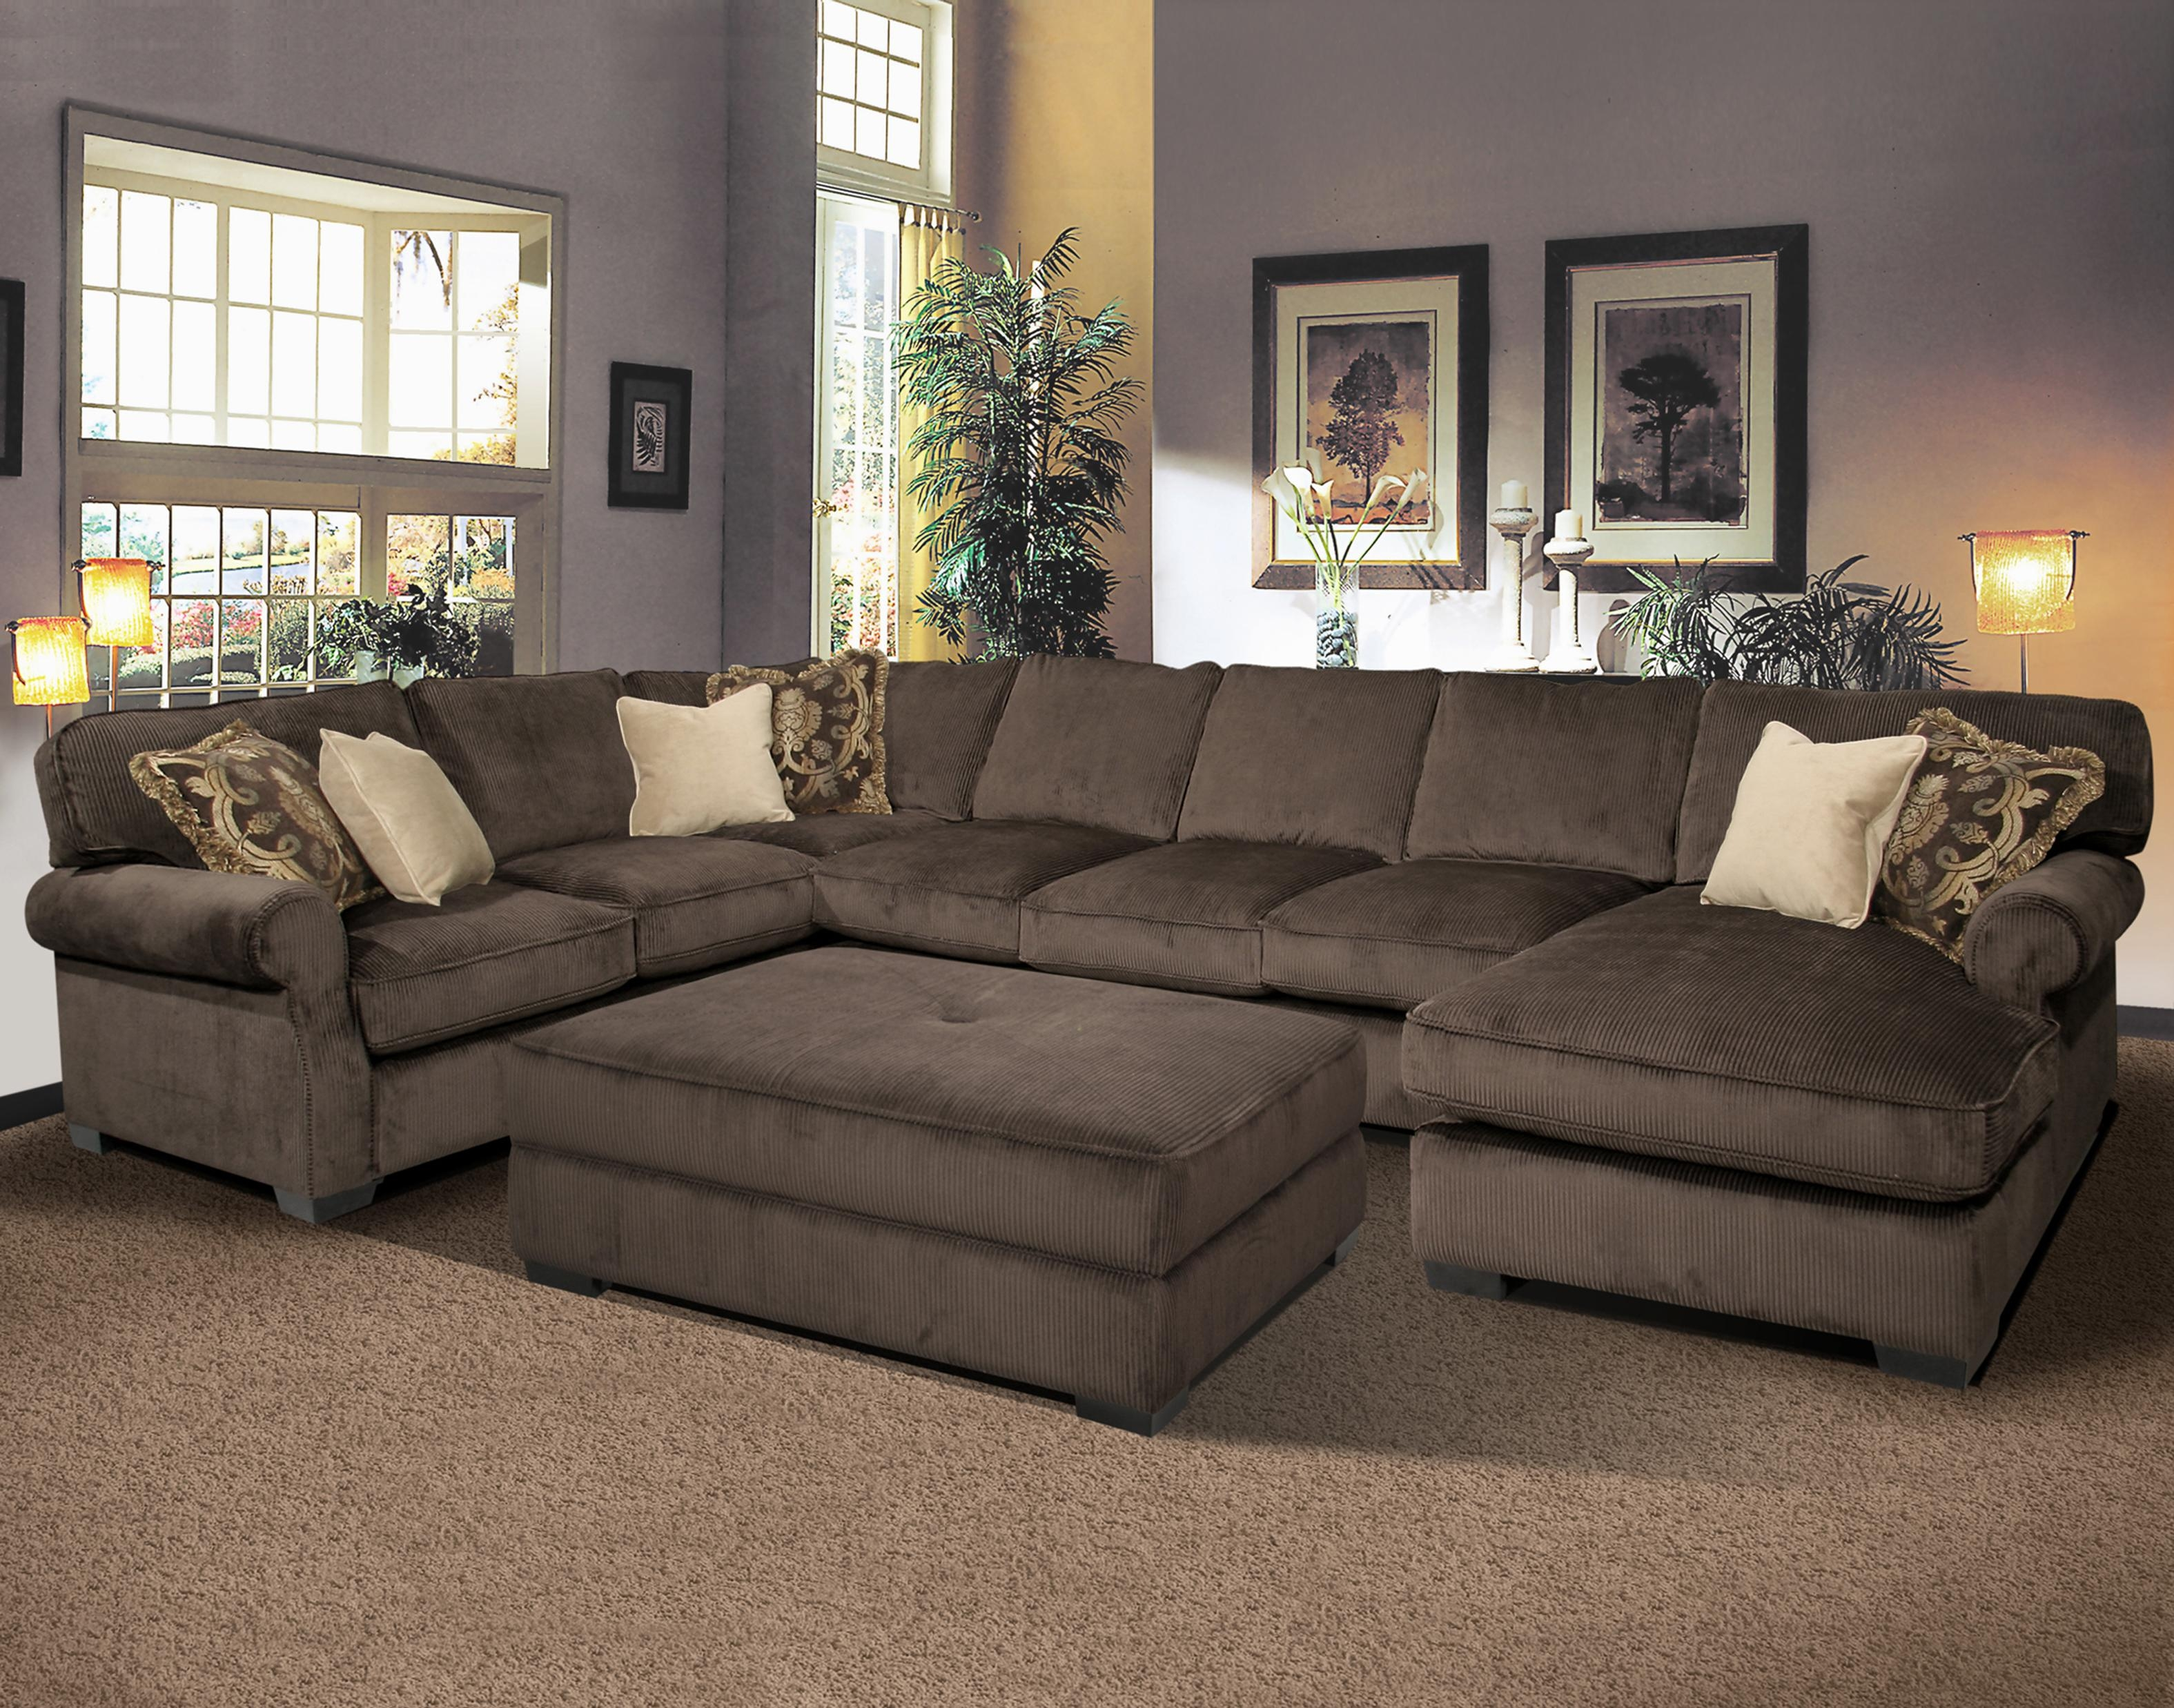 Big Sofas Sectionals Cleanupflorida Intended For Big Sofas Sectionals (#3 of 12)